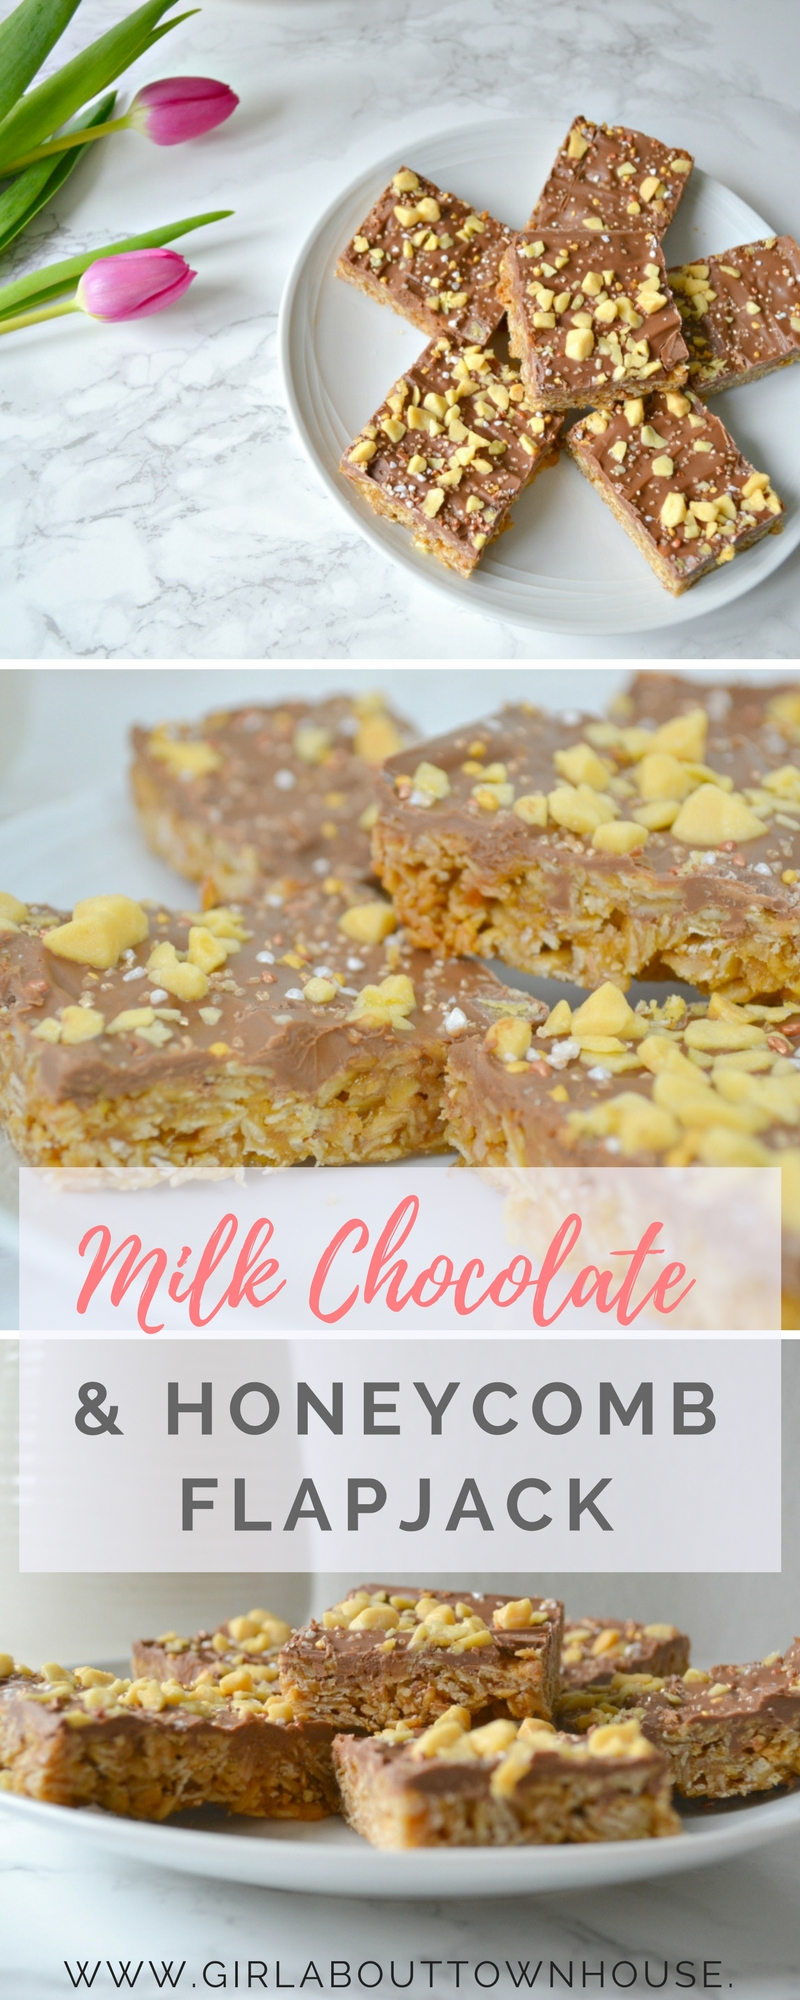 Milk chocolate & honeycomb flapjack recipe. A super easy and delicious recipe for soft, chewy flapjack made with honey.